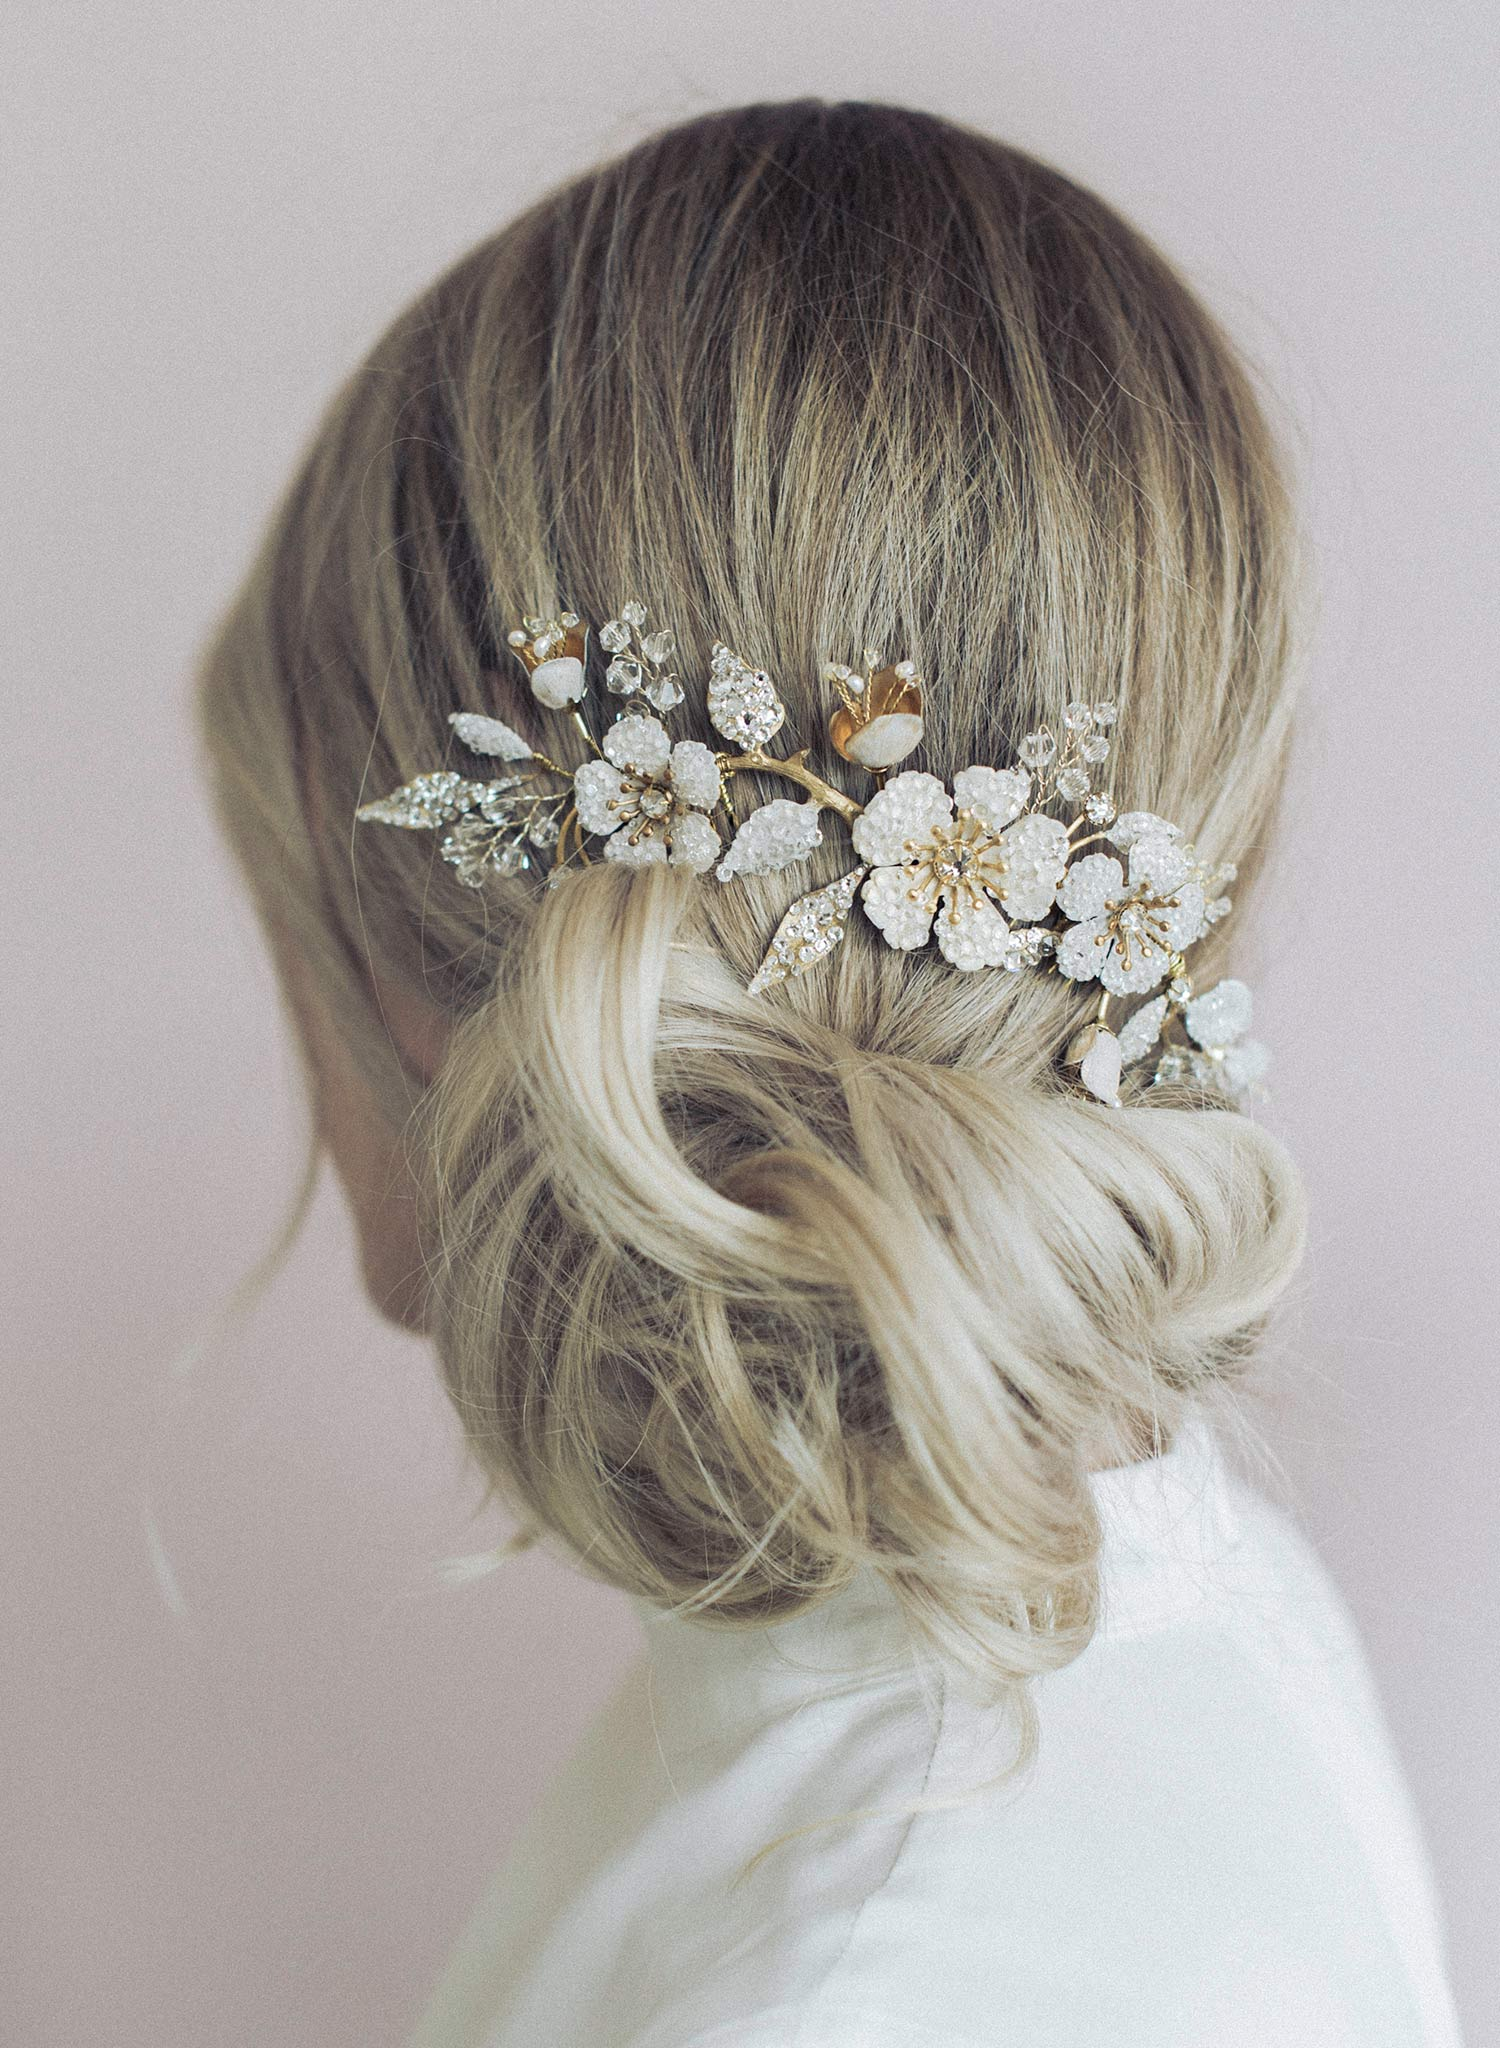 Crystal encrusted flower and bud headpiece - Style #930